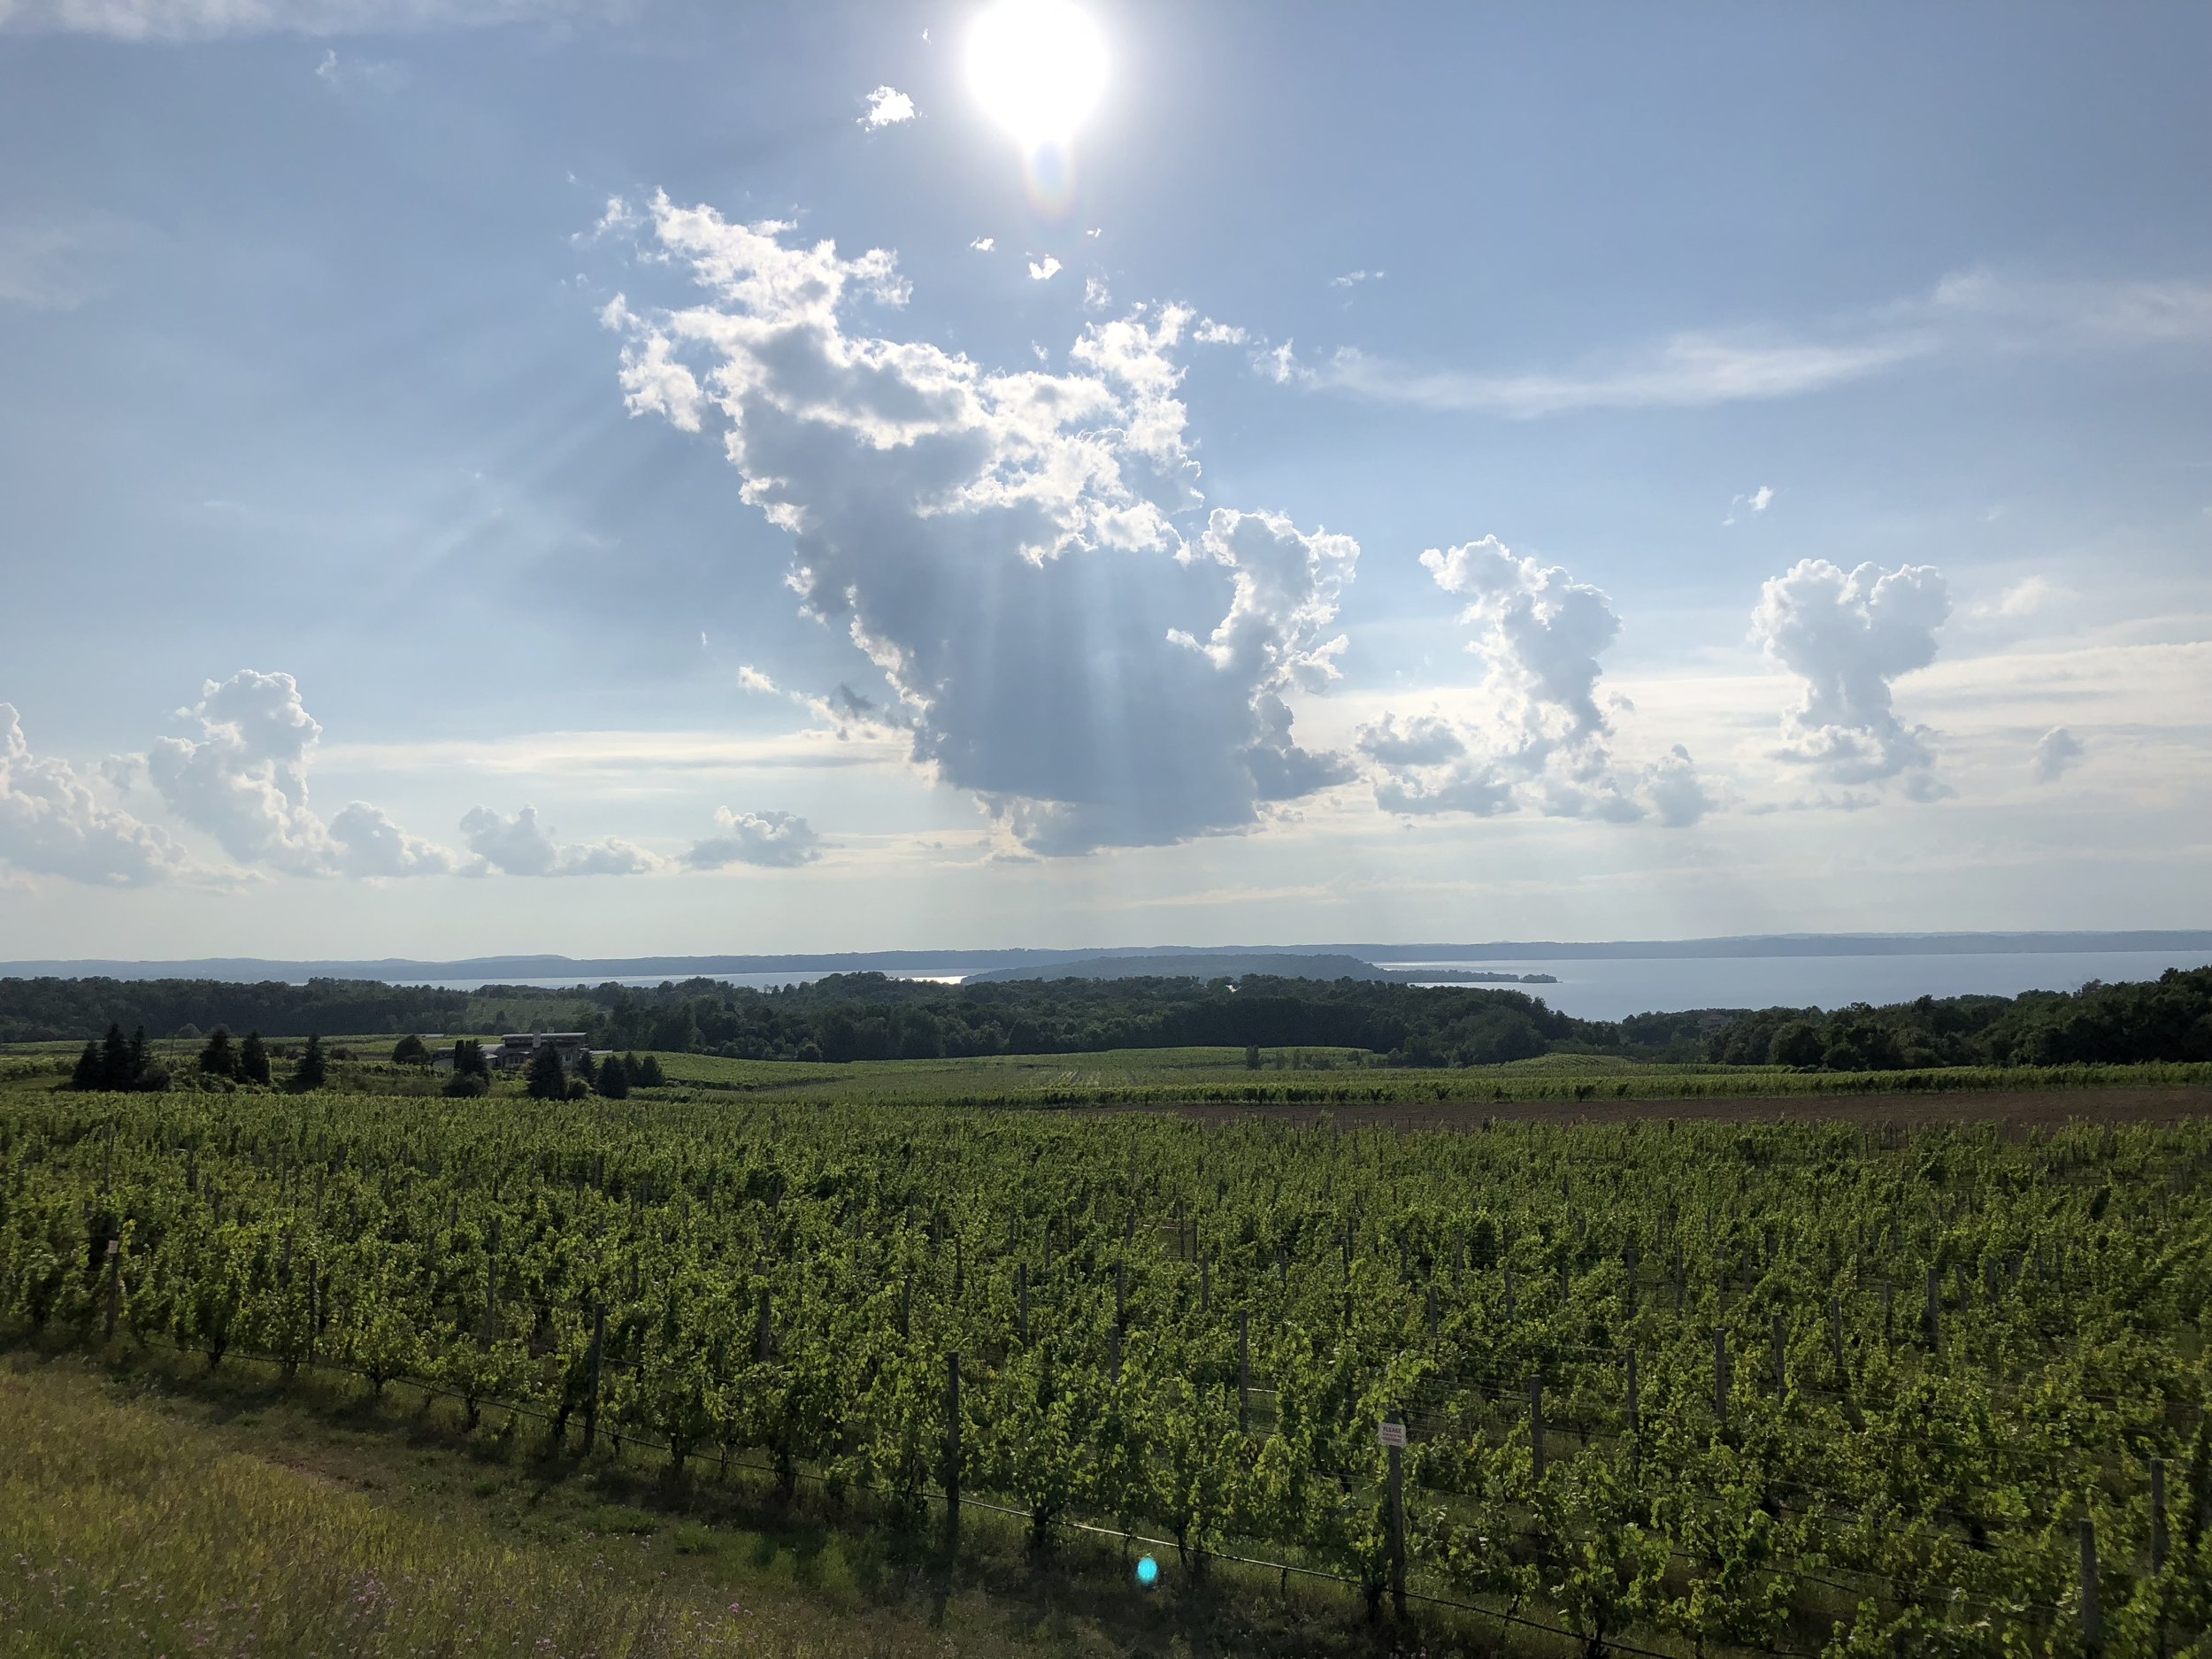 Michigan wine country, also on Old Mission Peninsula